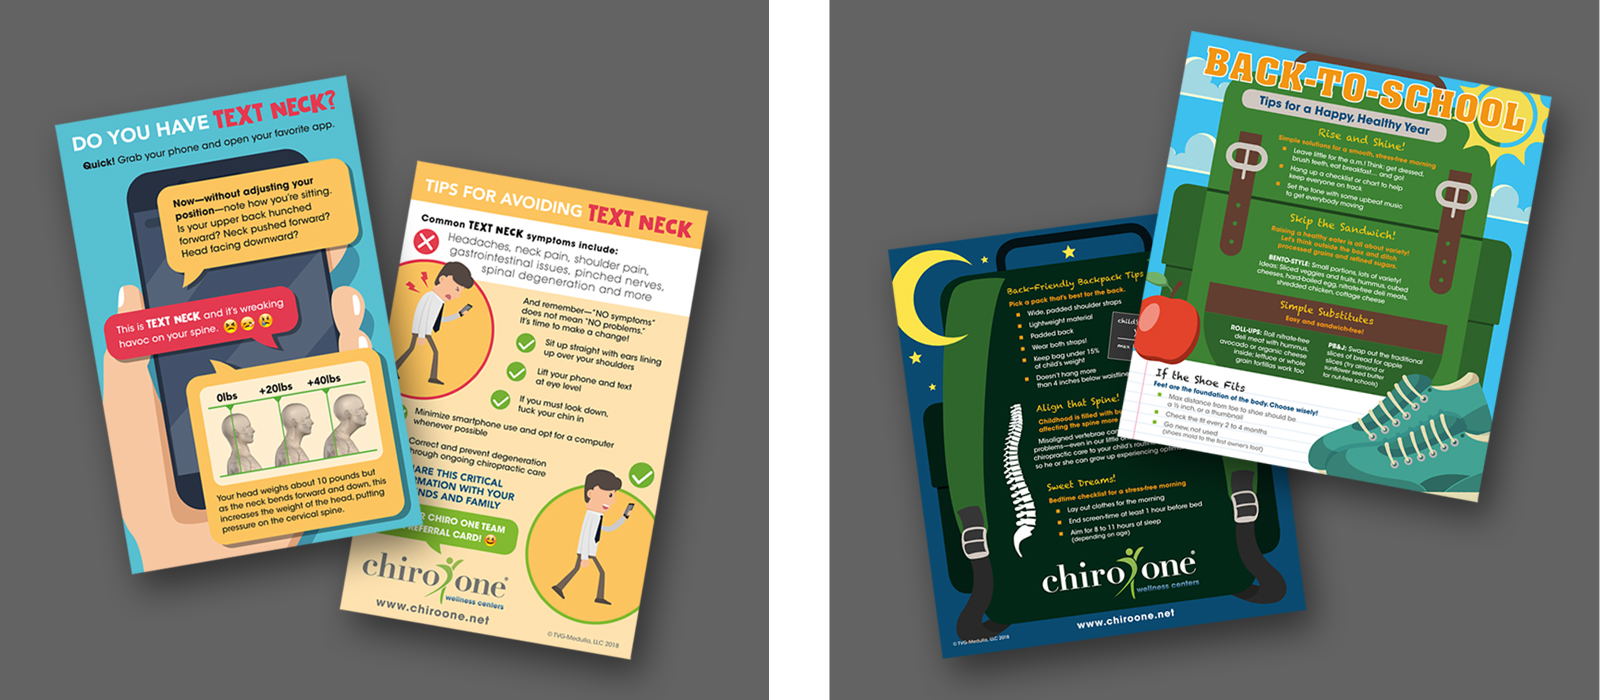 Chiro One Text Neck and Back-to-School Info Graphic Cards